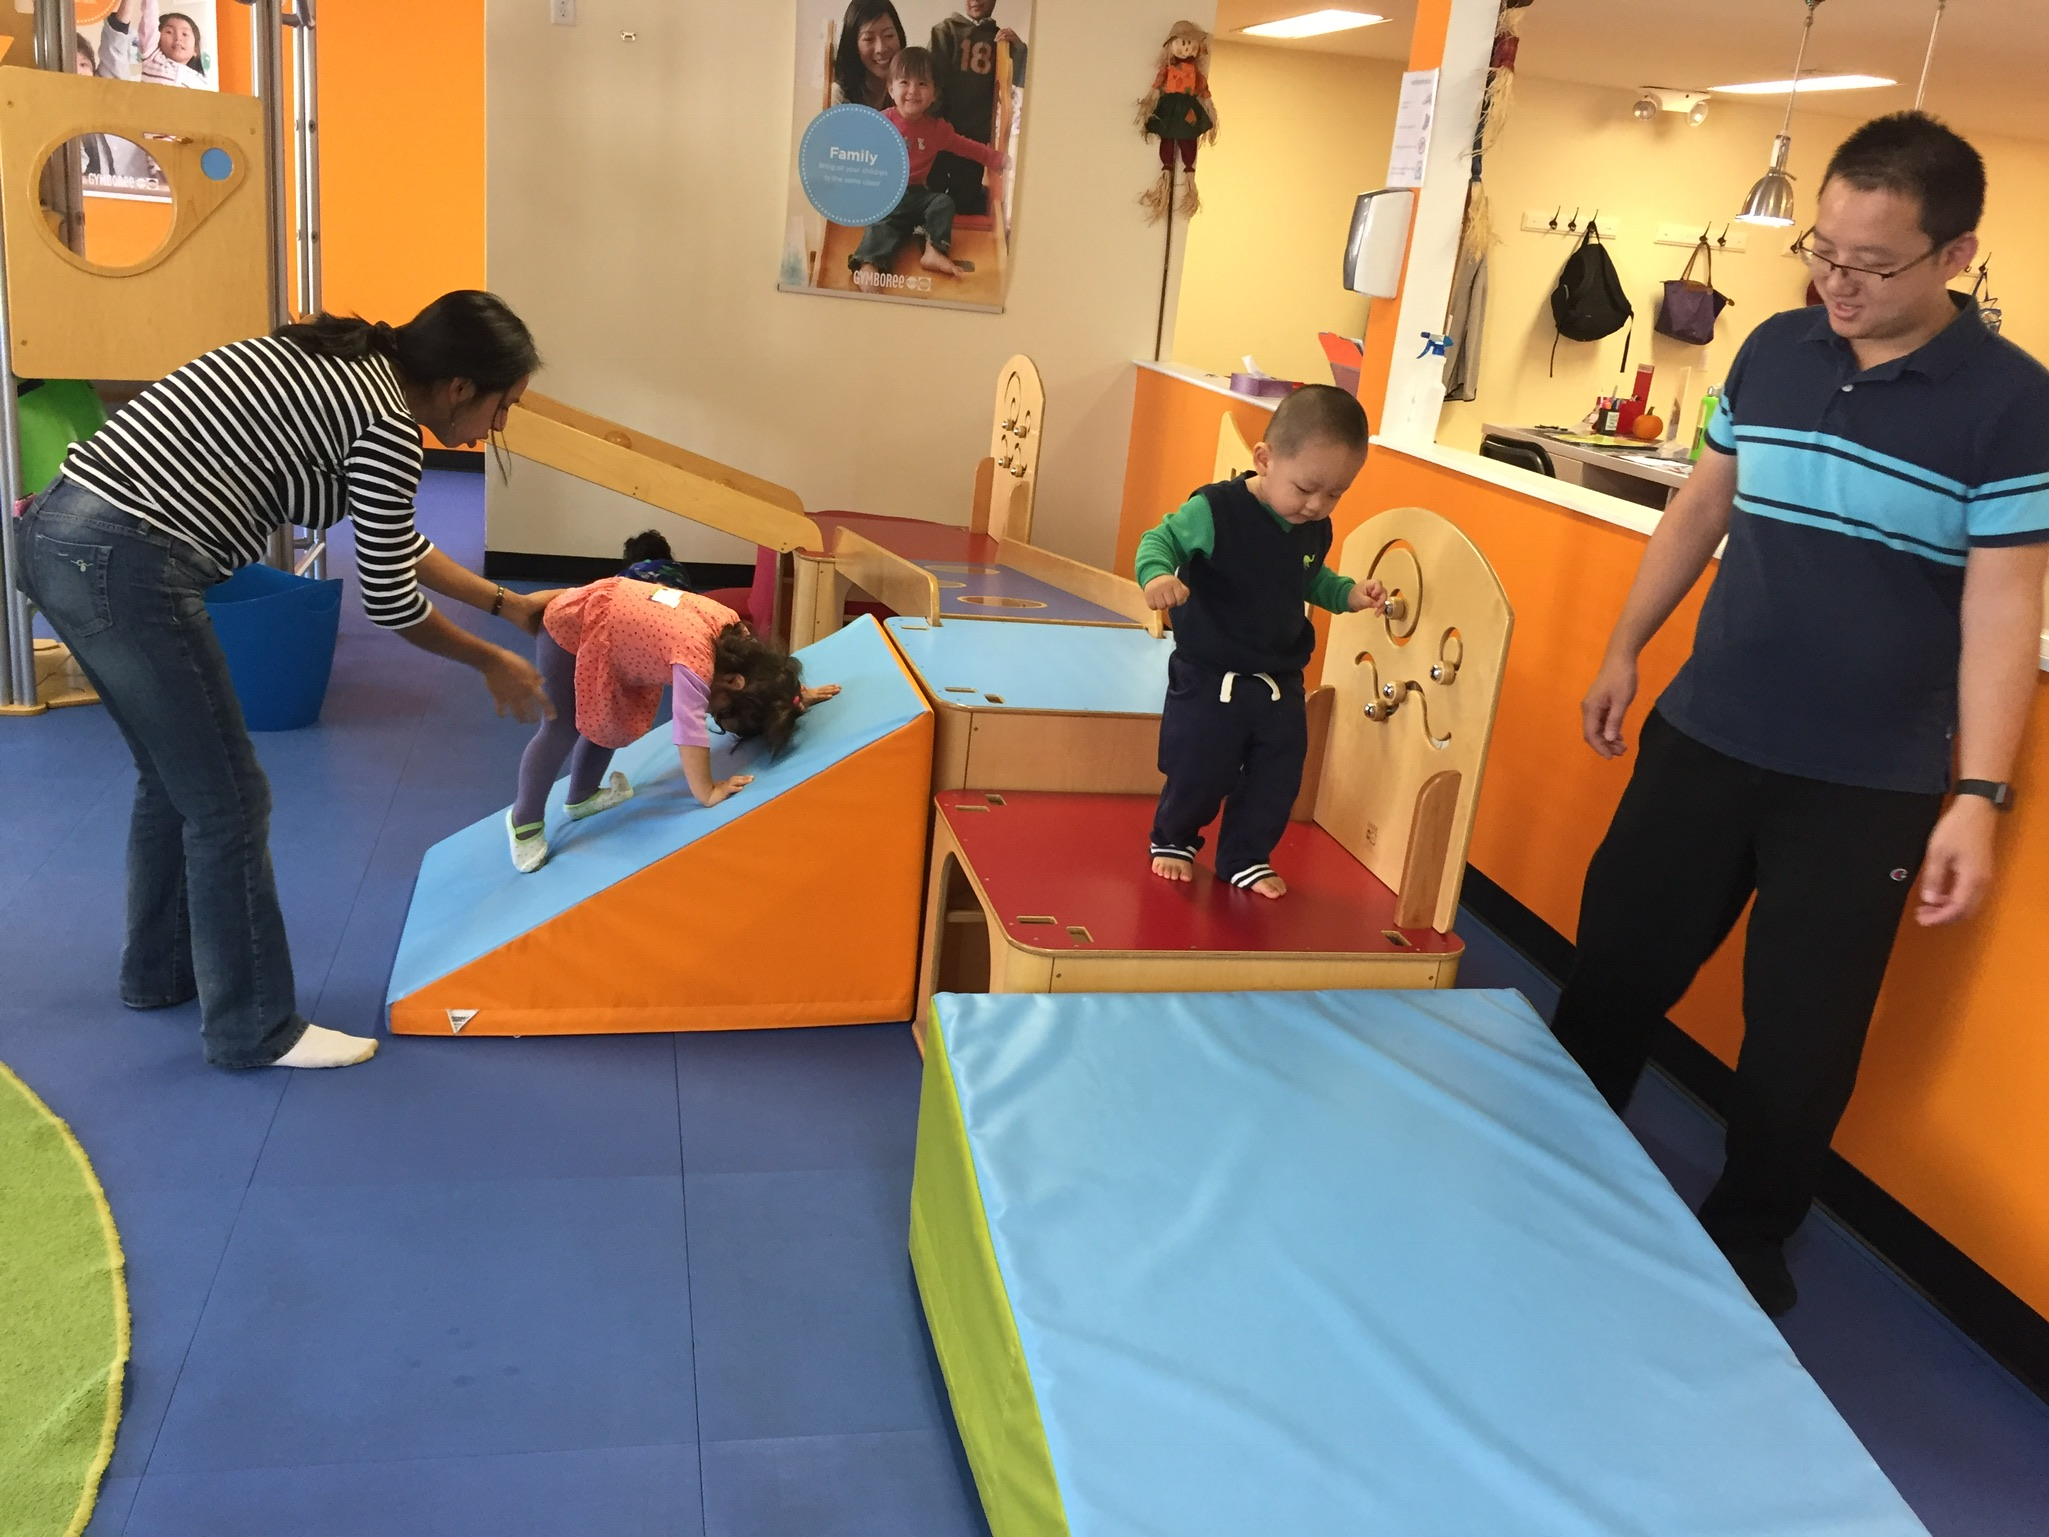 Discounted Indoor Play dates for Children at Gymboree Play & Music in Jersey City